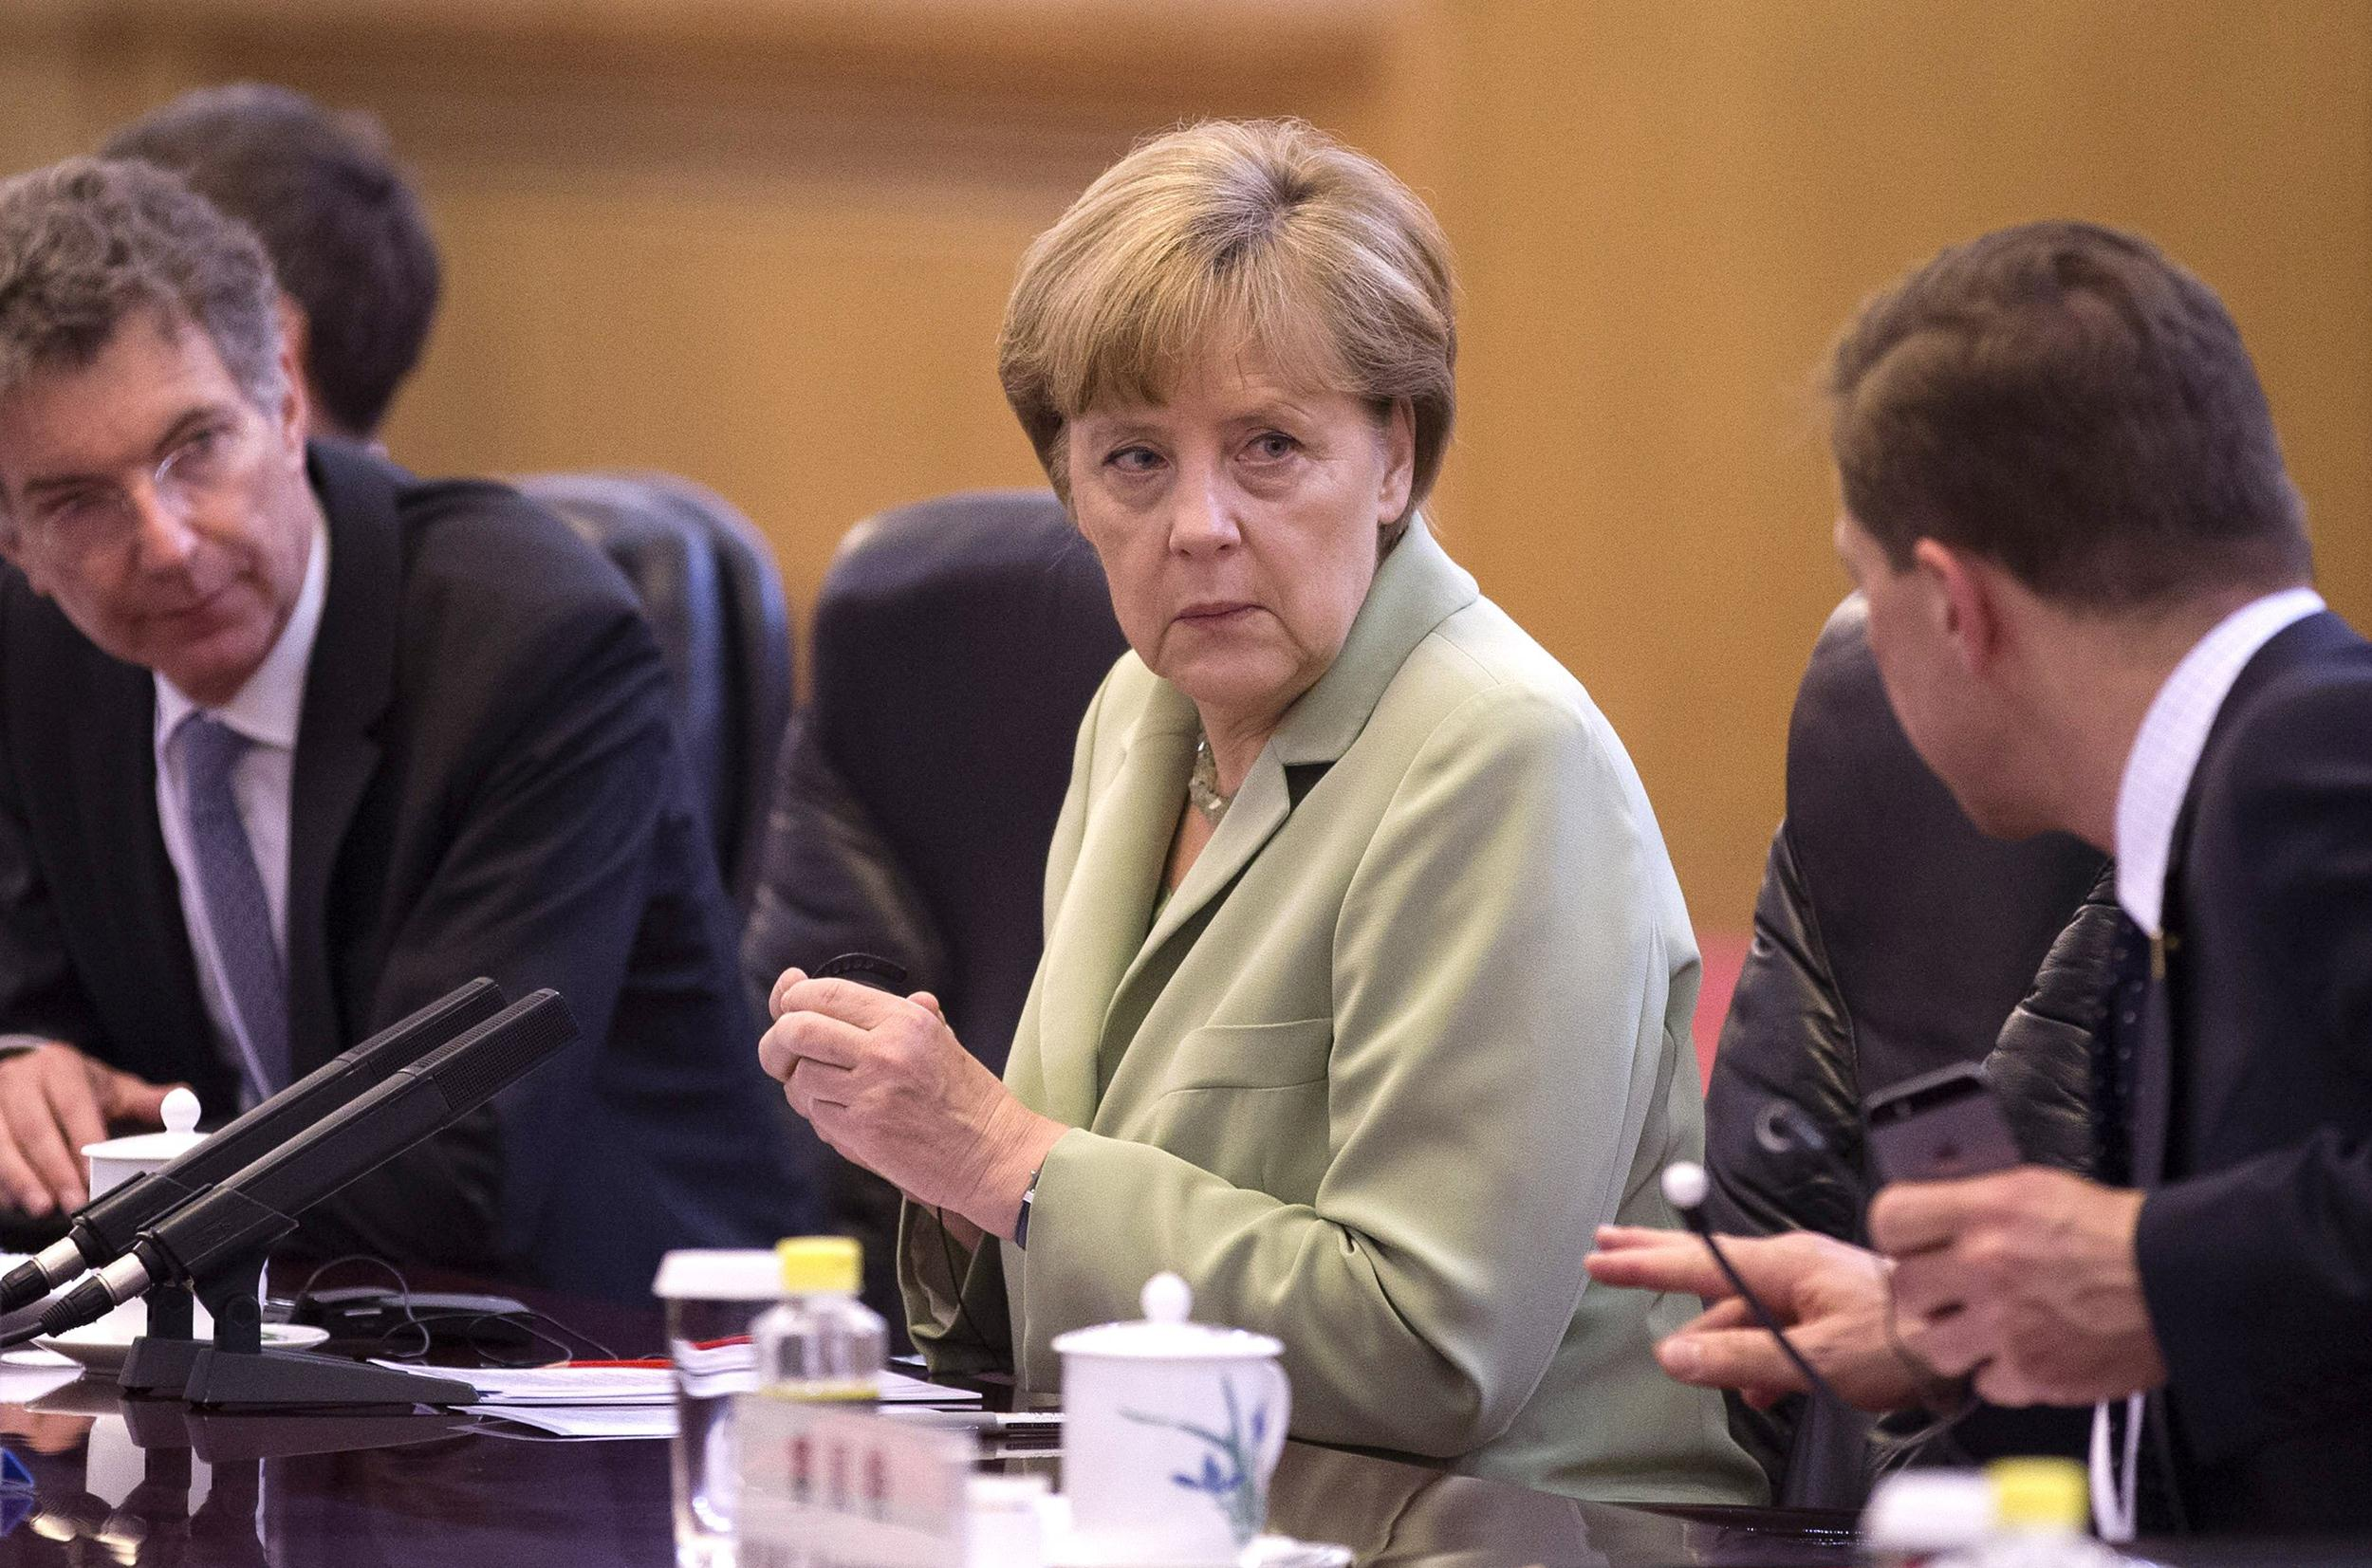 Image: German Chancellor Angela Merkel Visits China